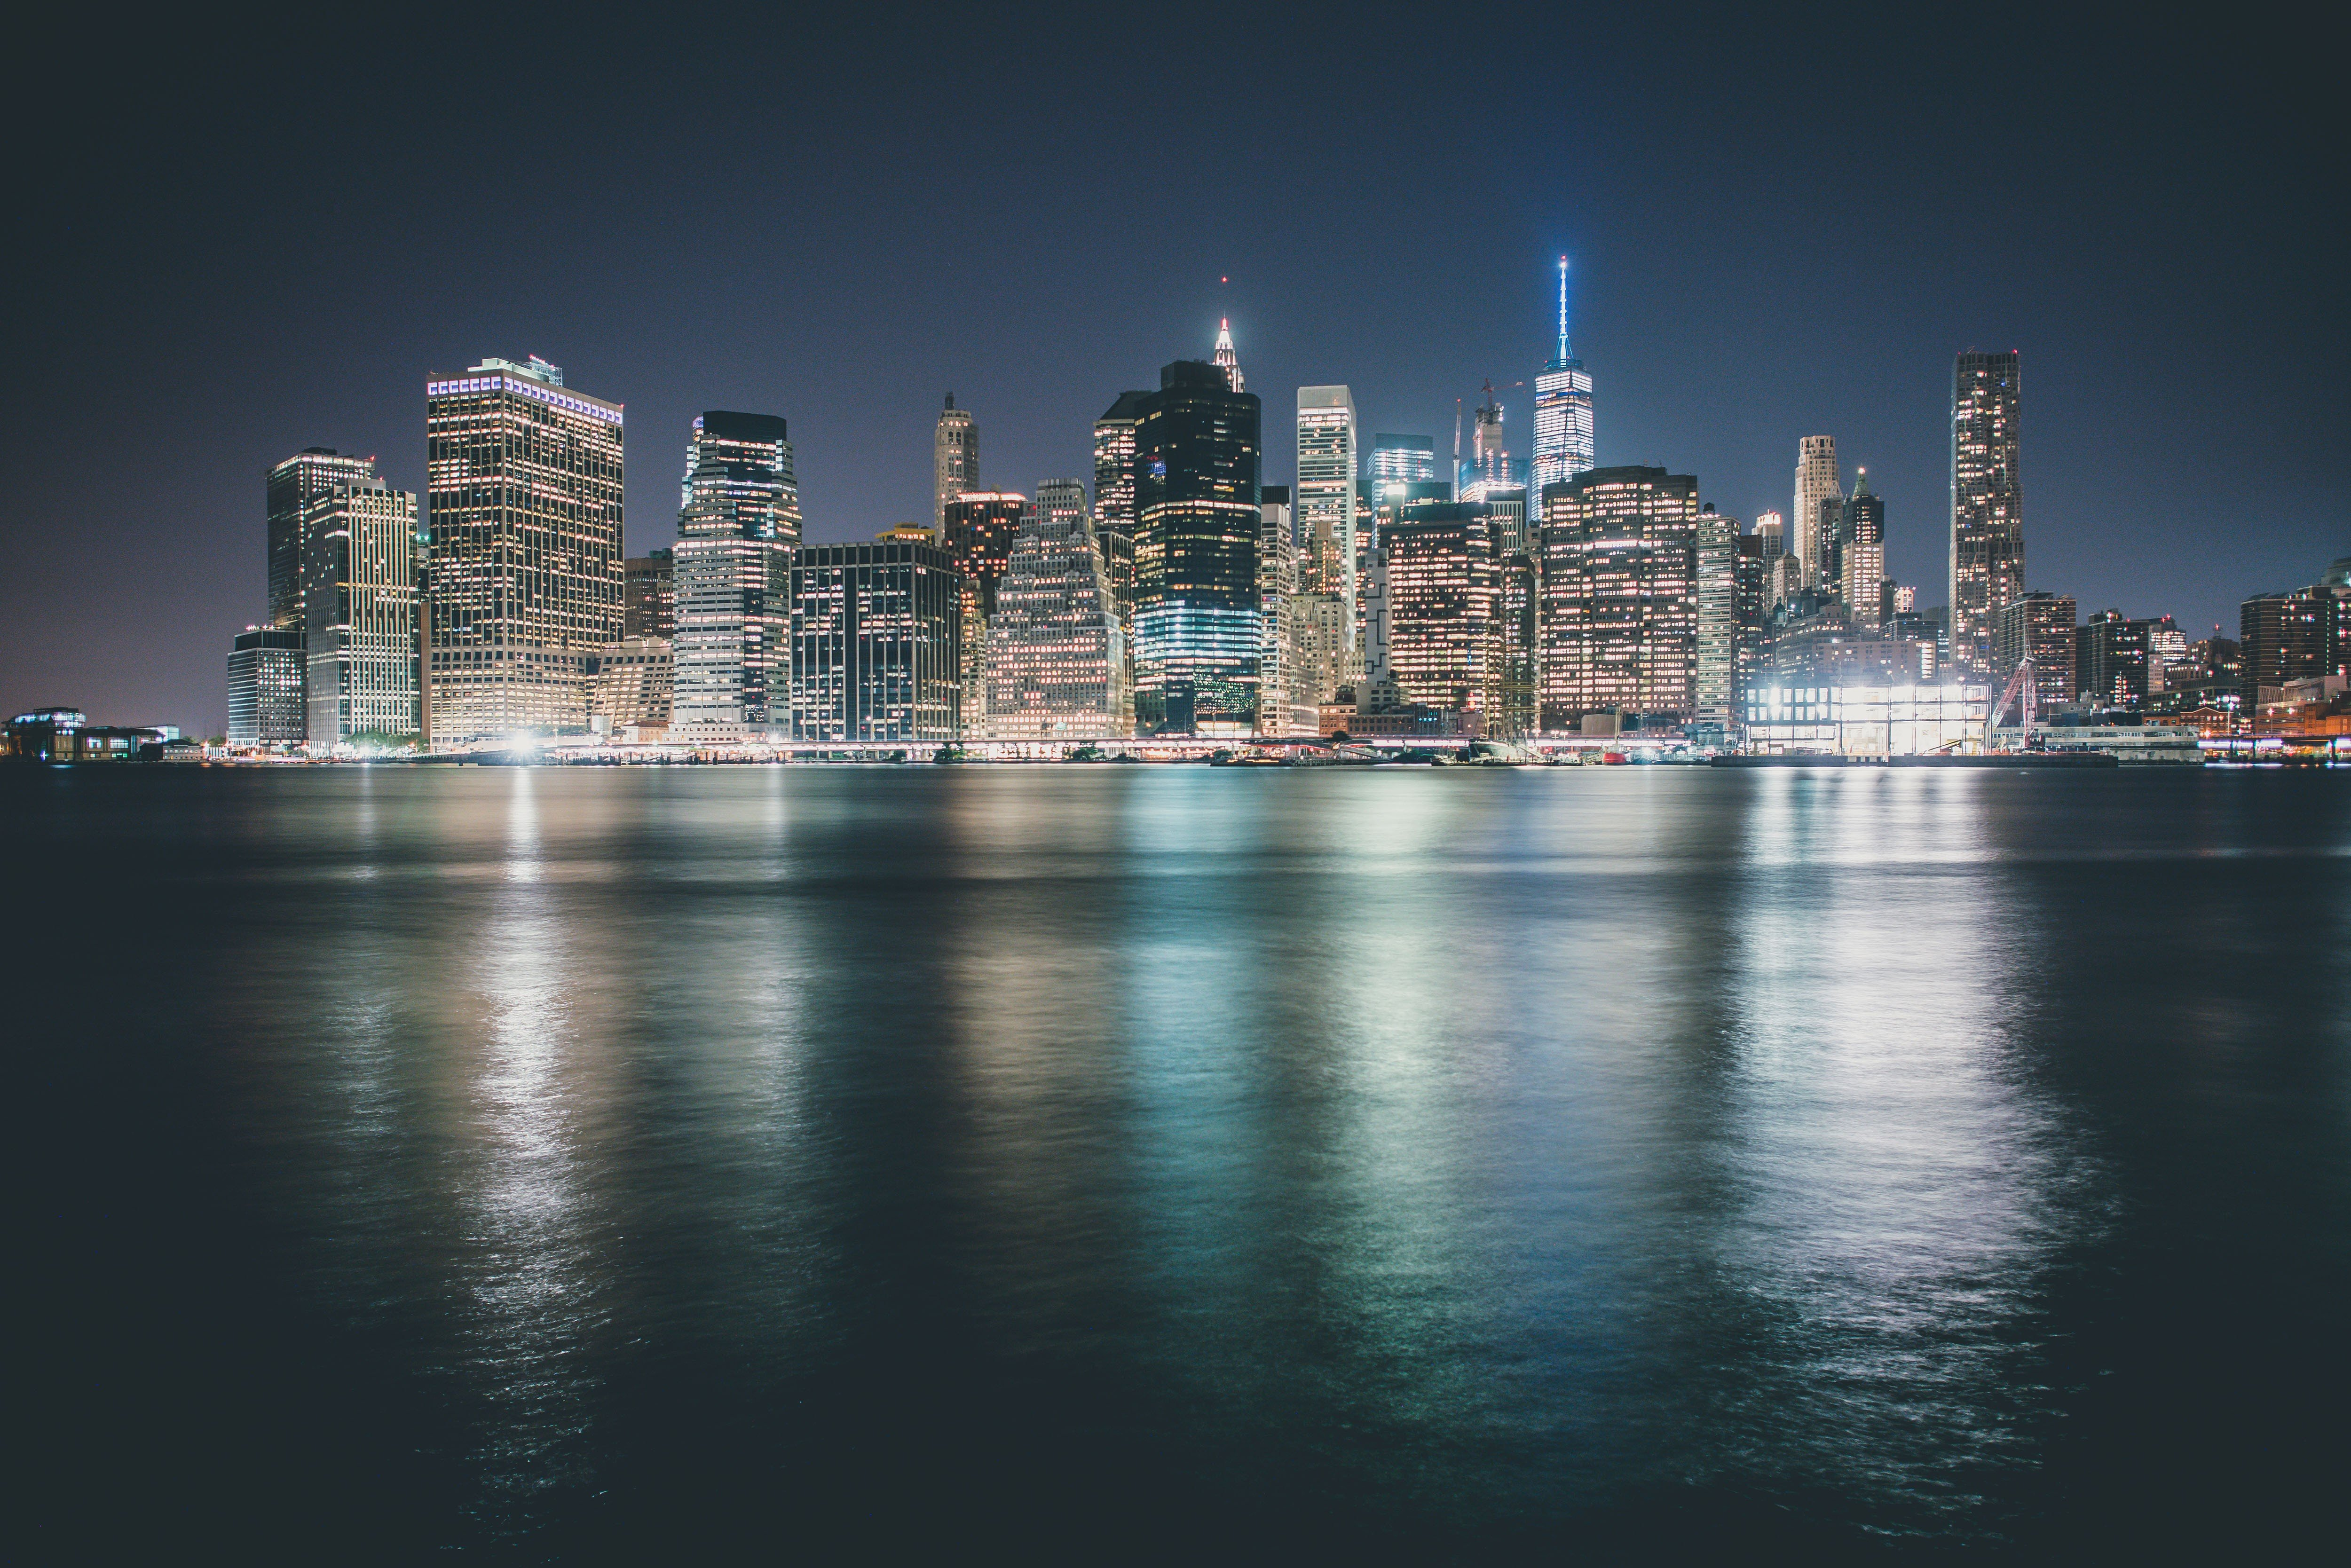 City Lights Cityscape Night Water Hd Wallpapers Desktop And Mobile Images Amp Photos